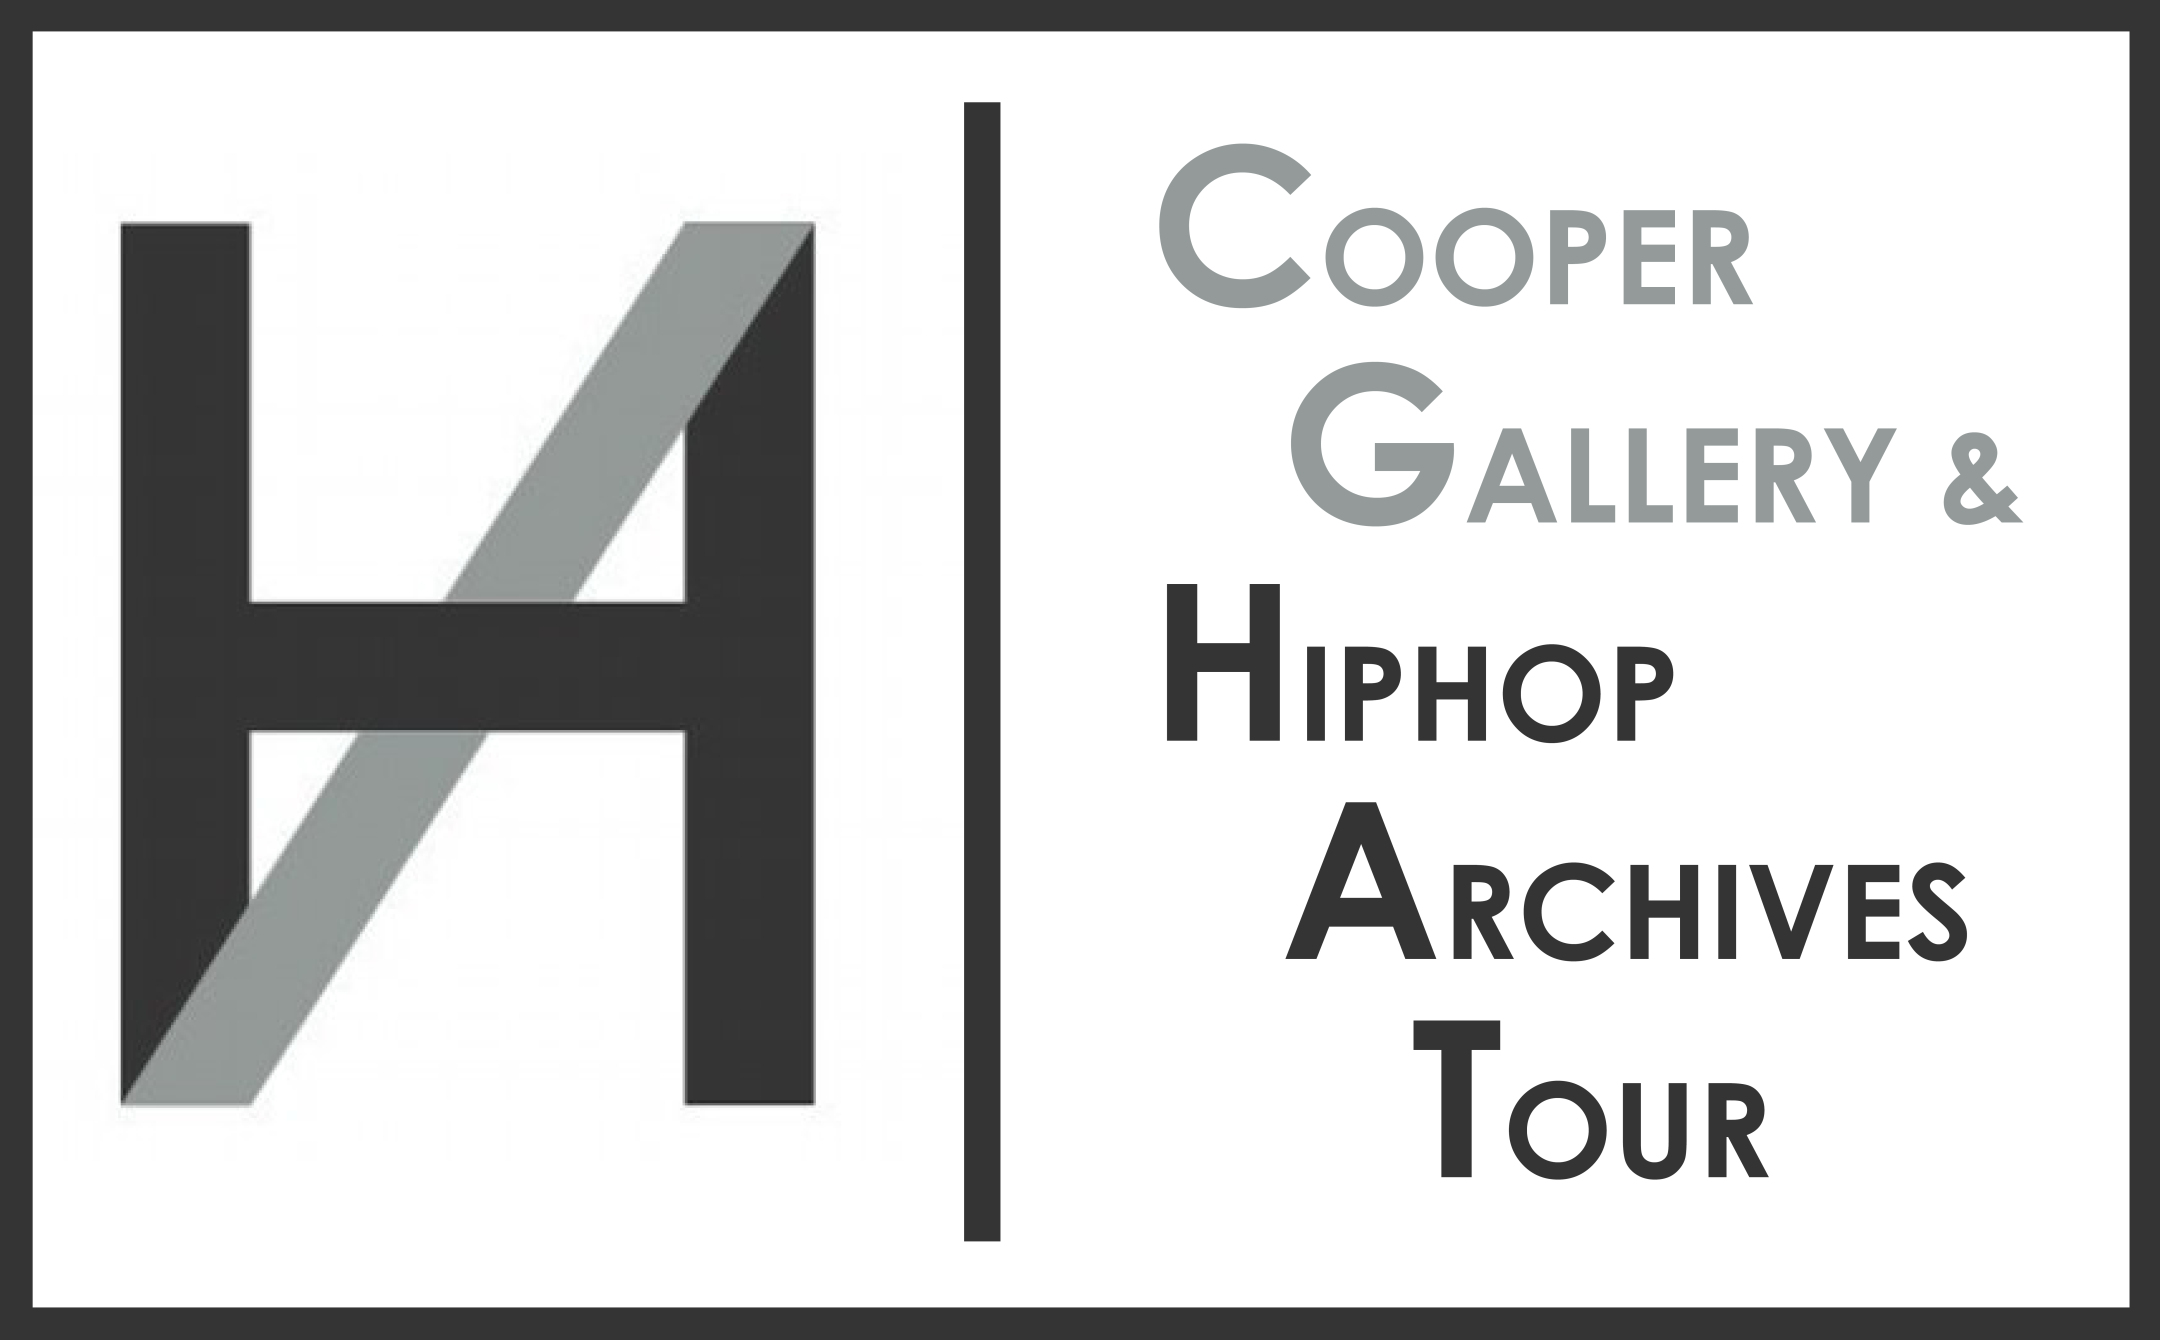 hiphop-archives-and-cooper-gallery-banner.jpg